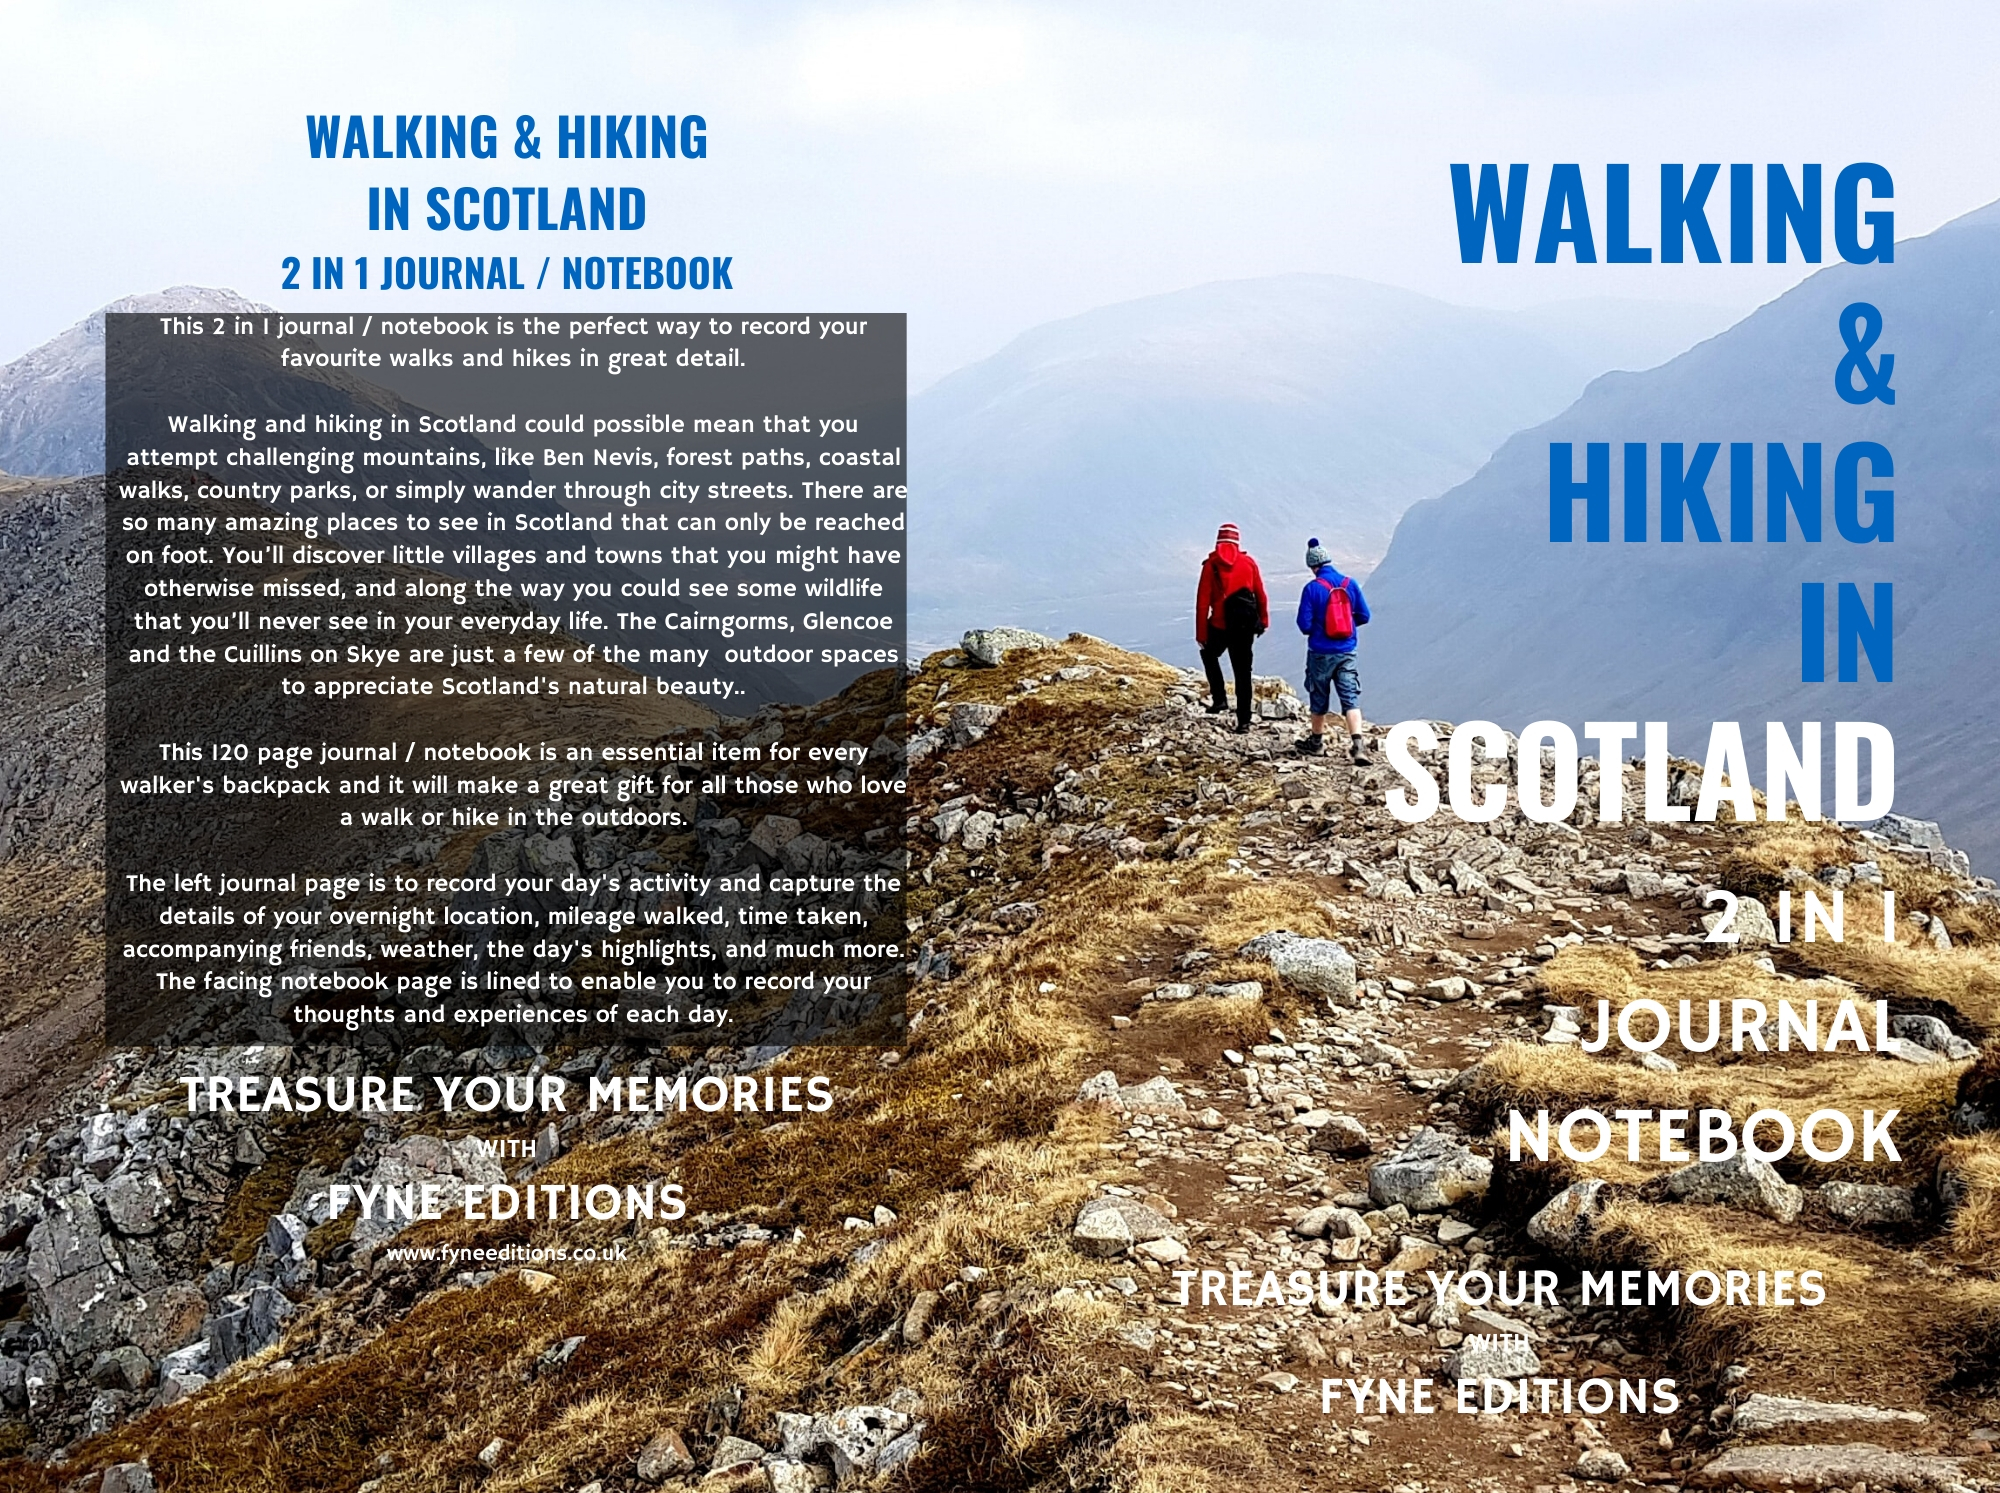 Walking & Hiking in Scotland 2 in 1 Journal & Notebookal Cover